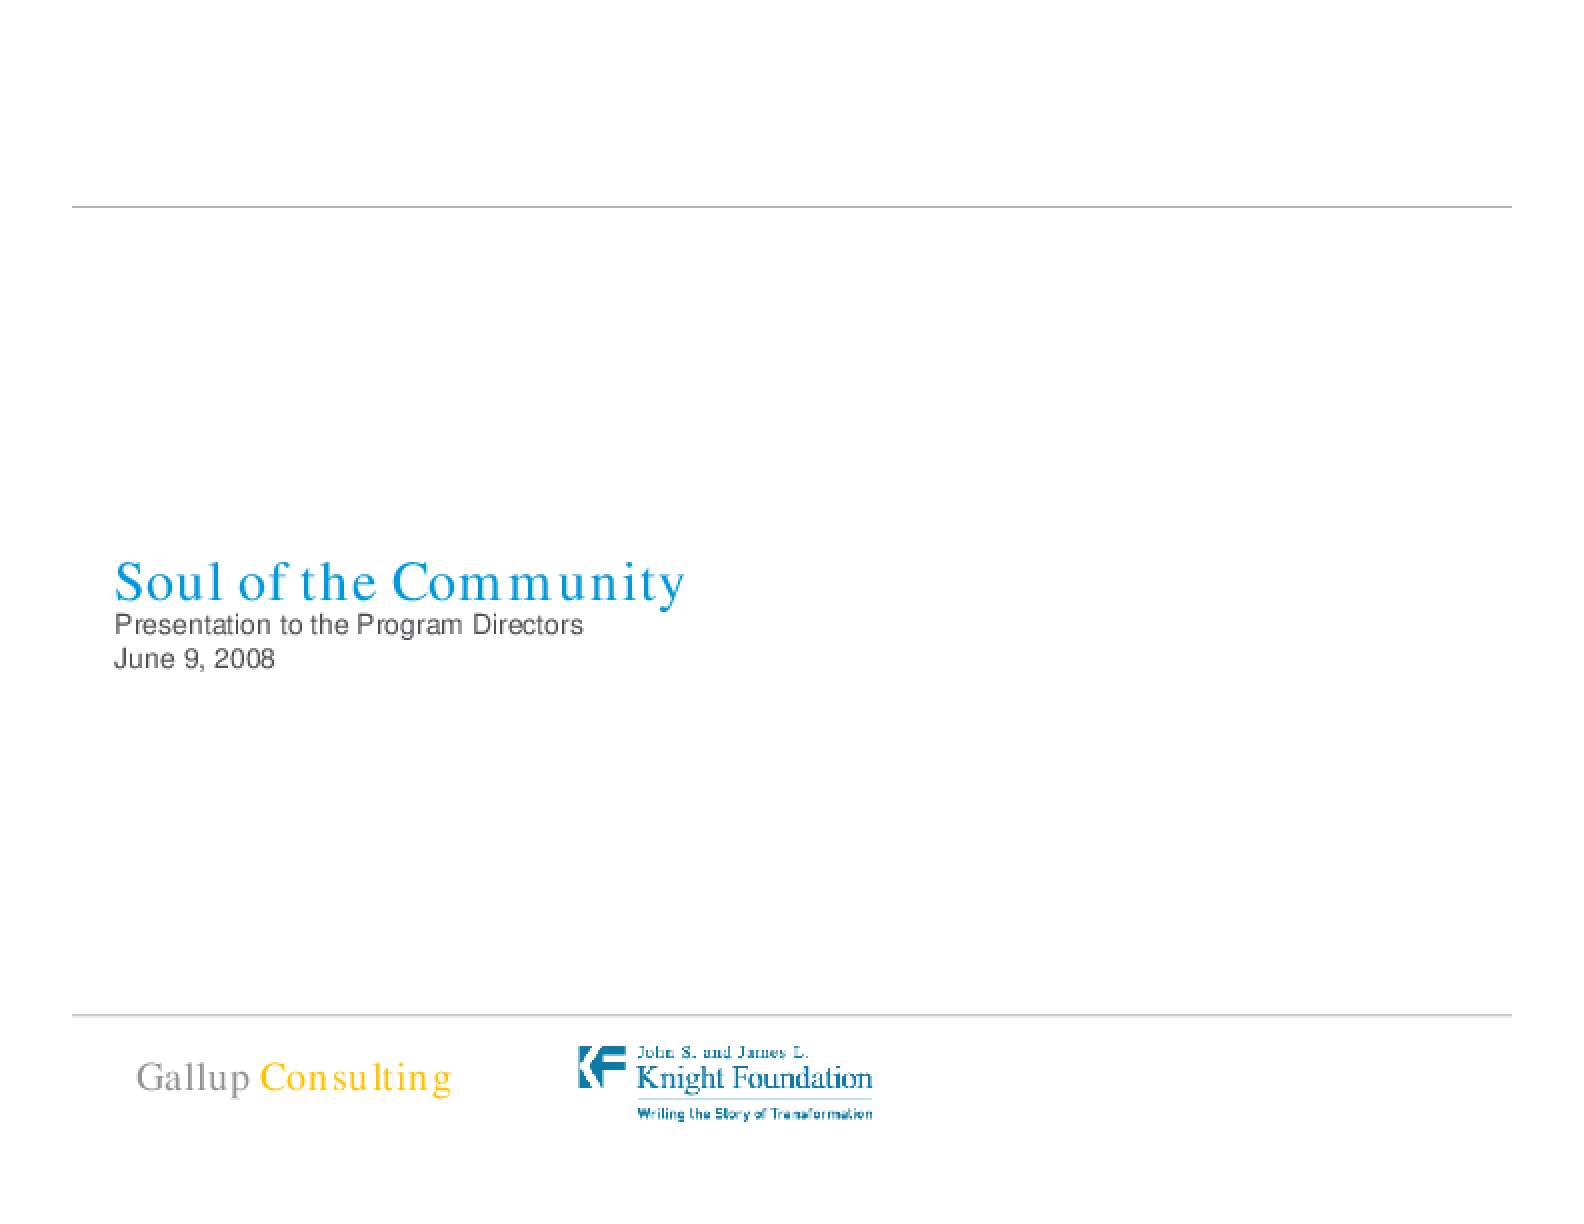 Soul of the Community